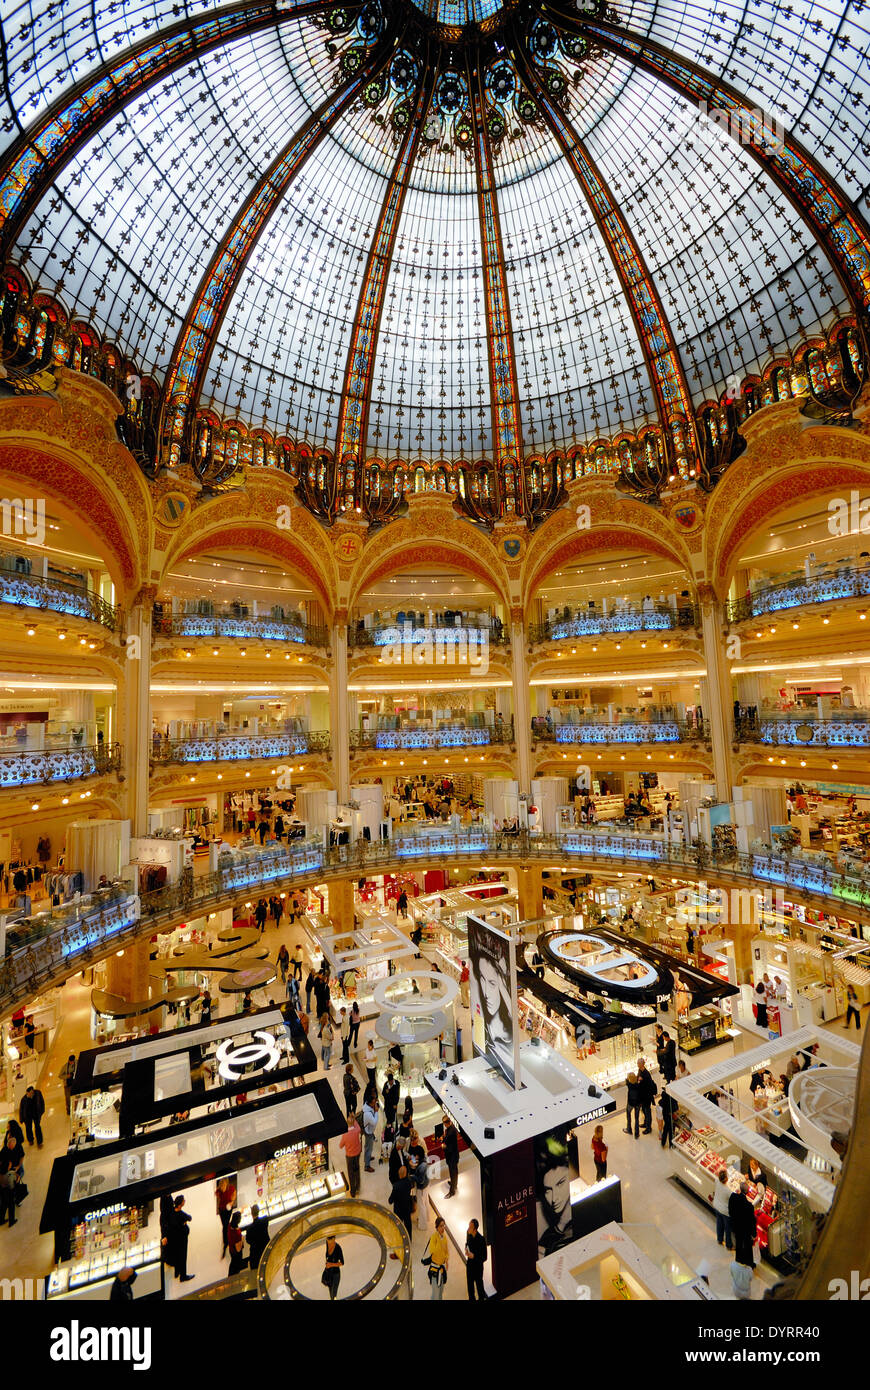 galeries lafayette shopping mall paris france stock photo